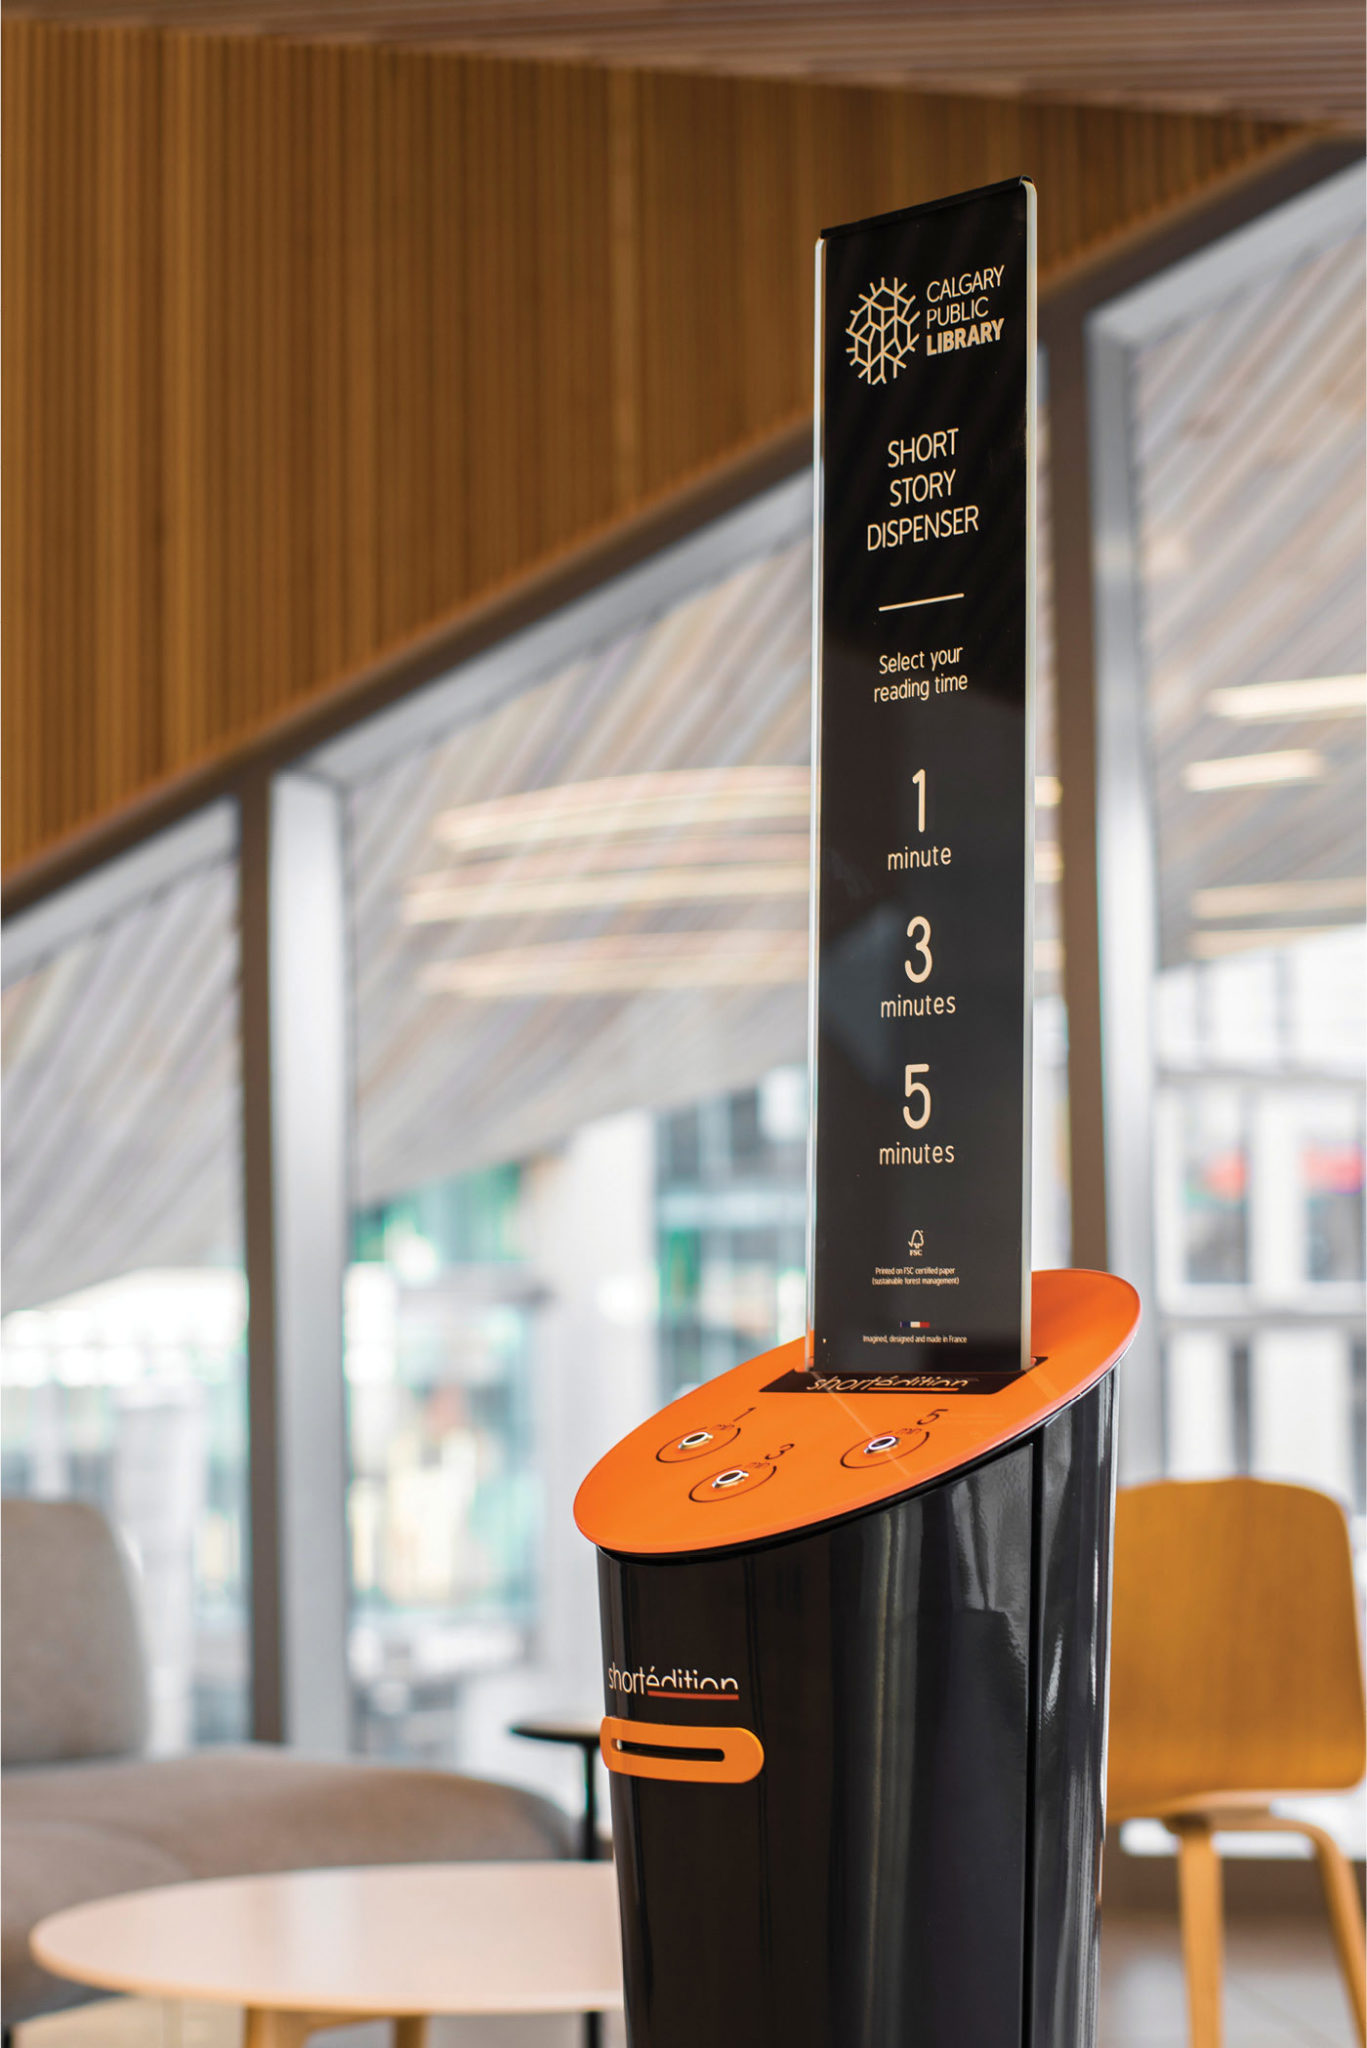 Image of [CA] Check Out the Short Story Dispenser Inside Calgary's Central Library